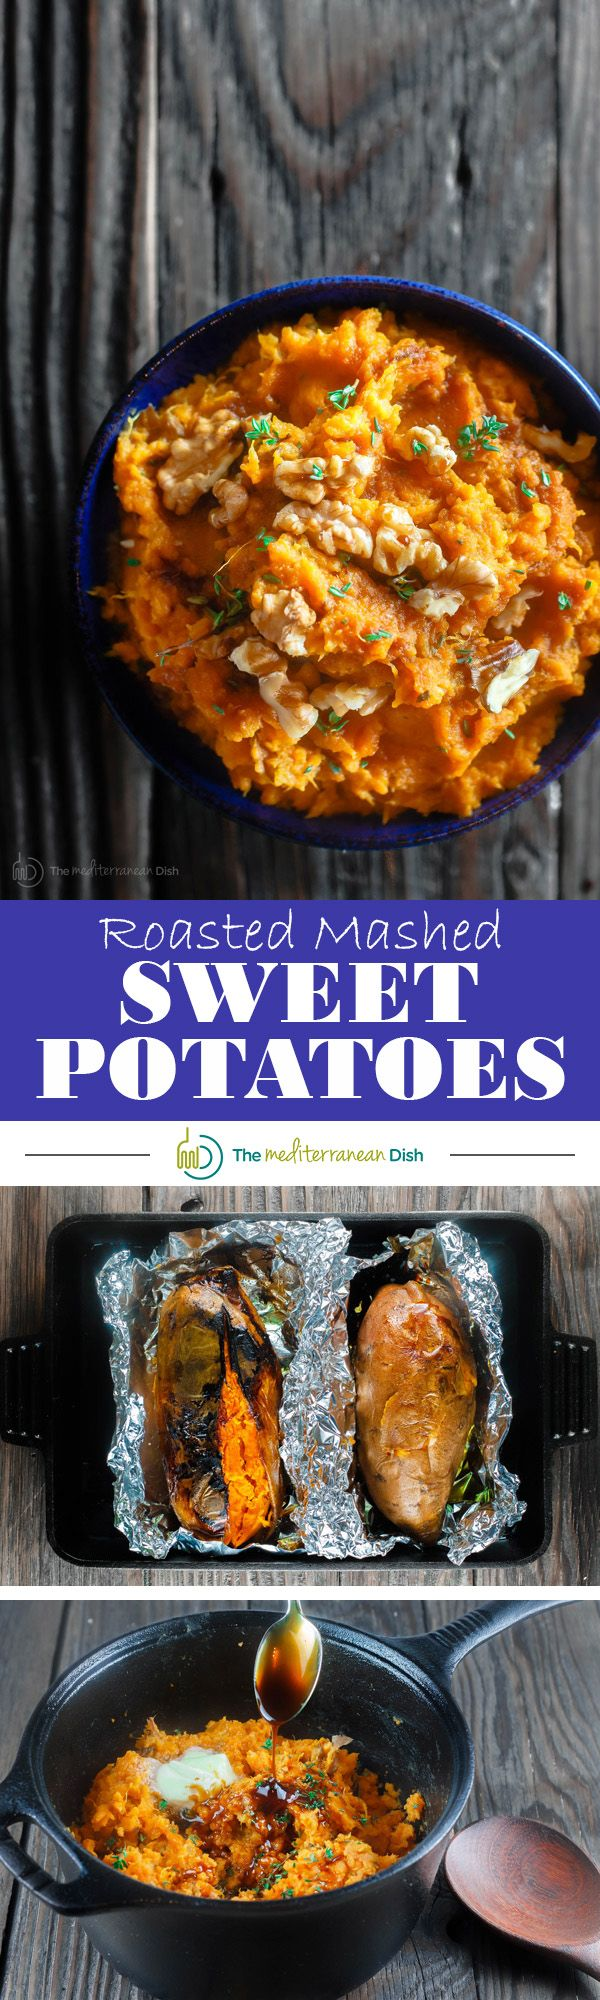 Sweet potato and molasses soup recipes